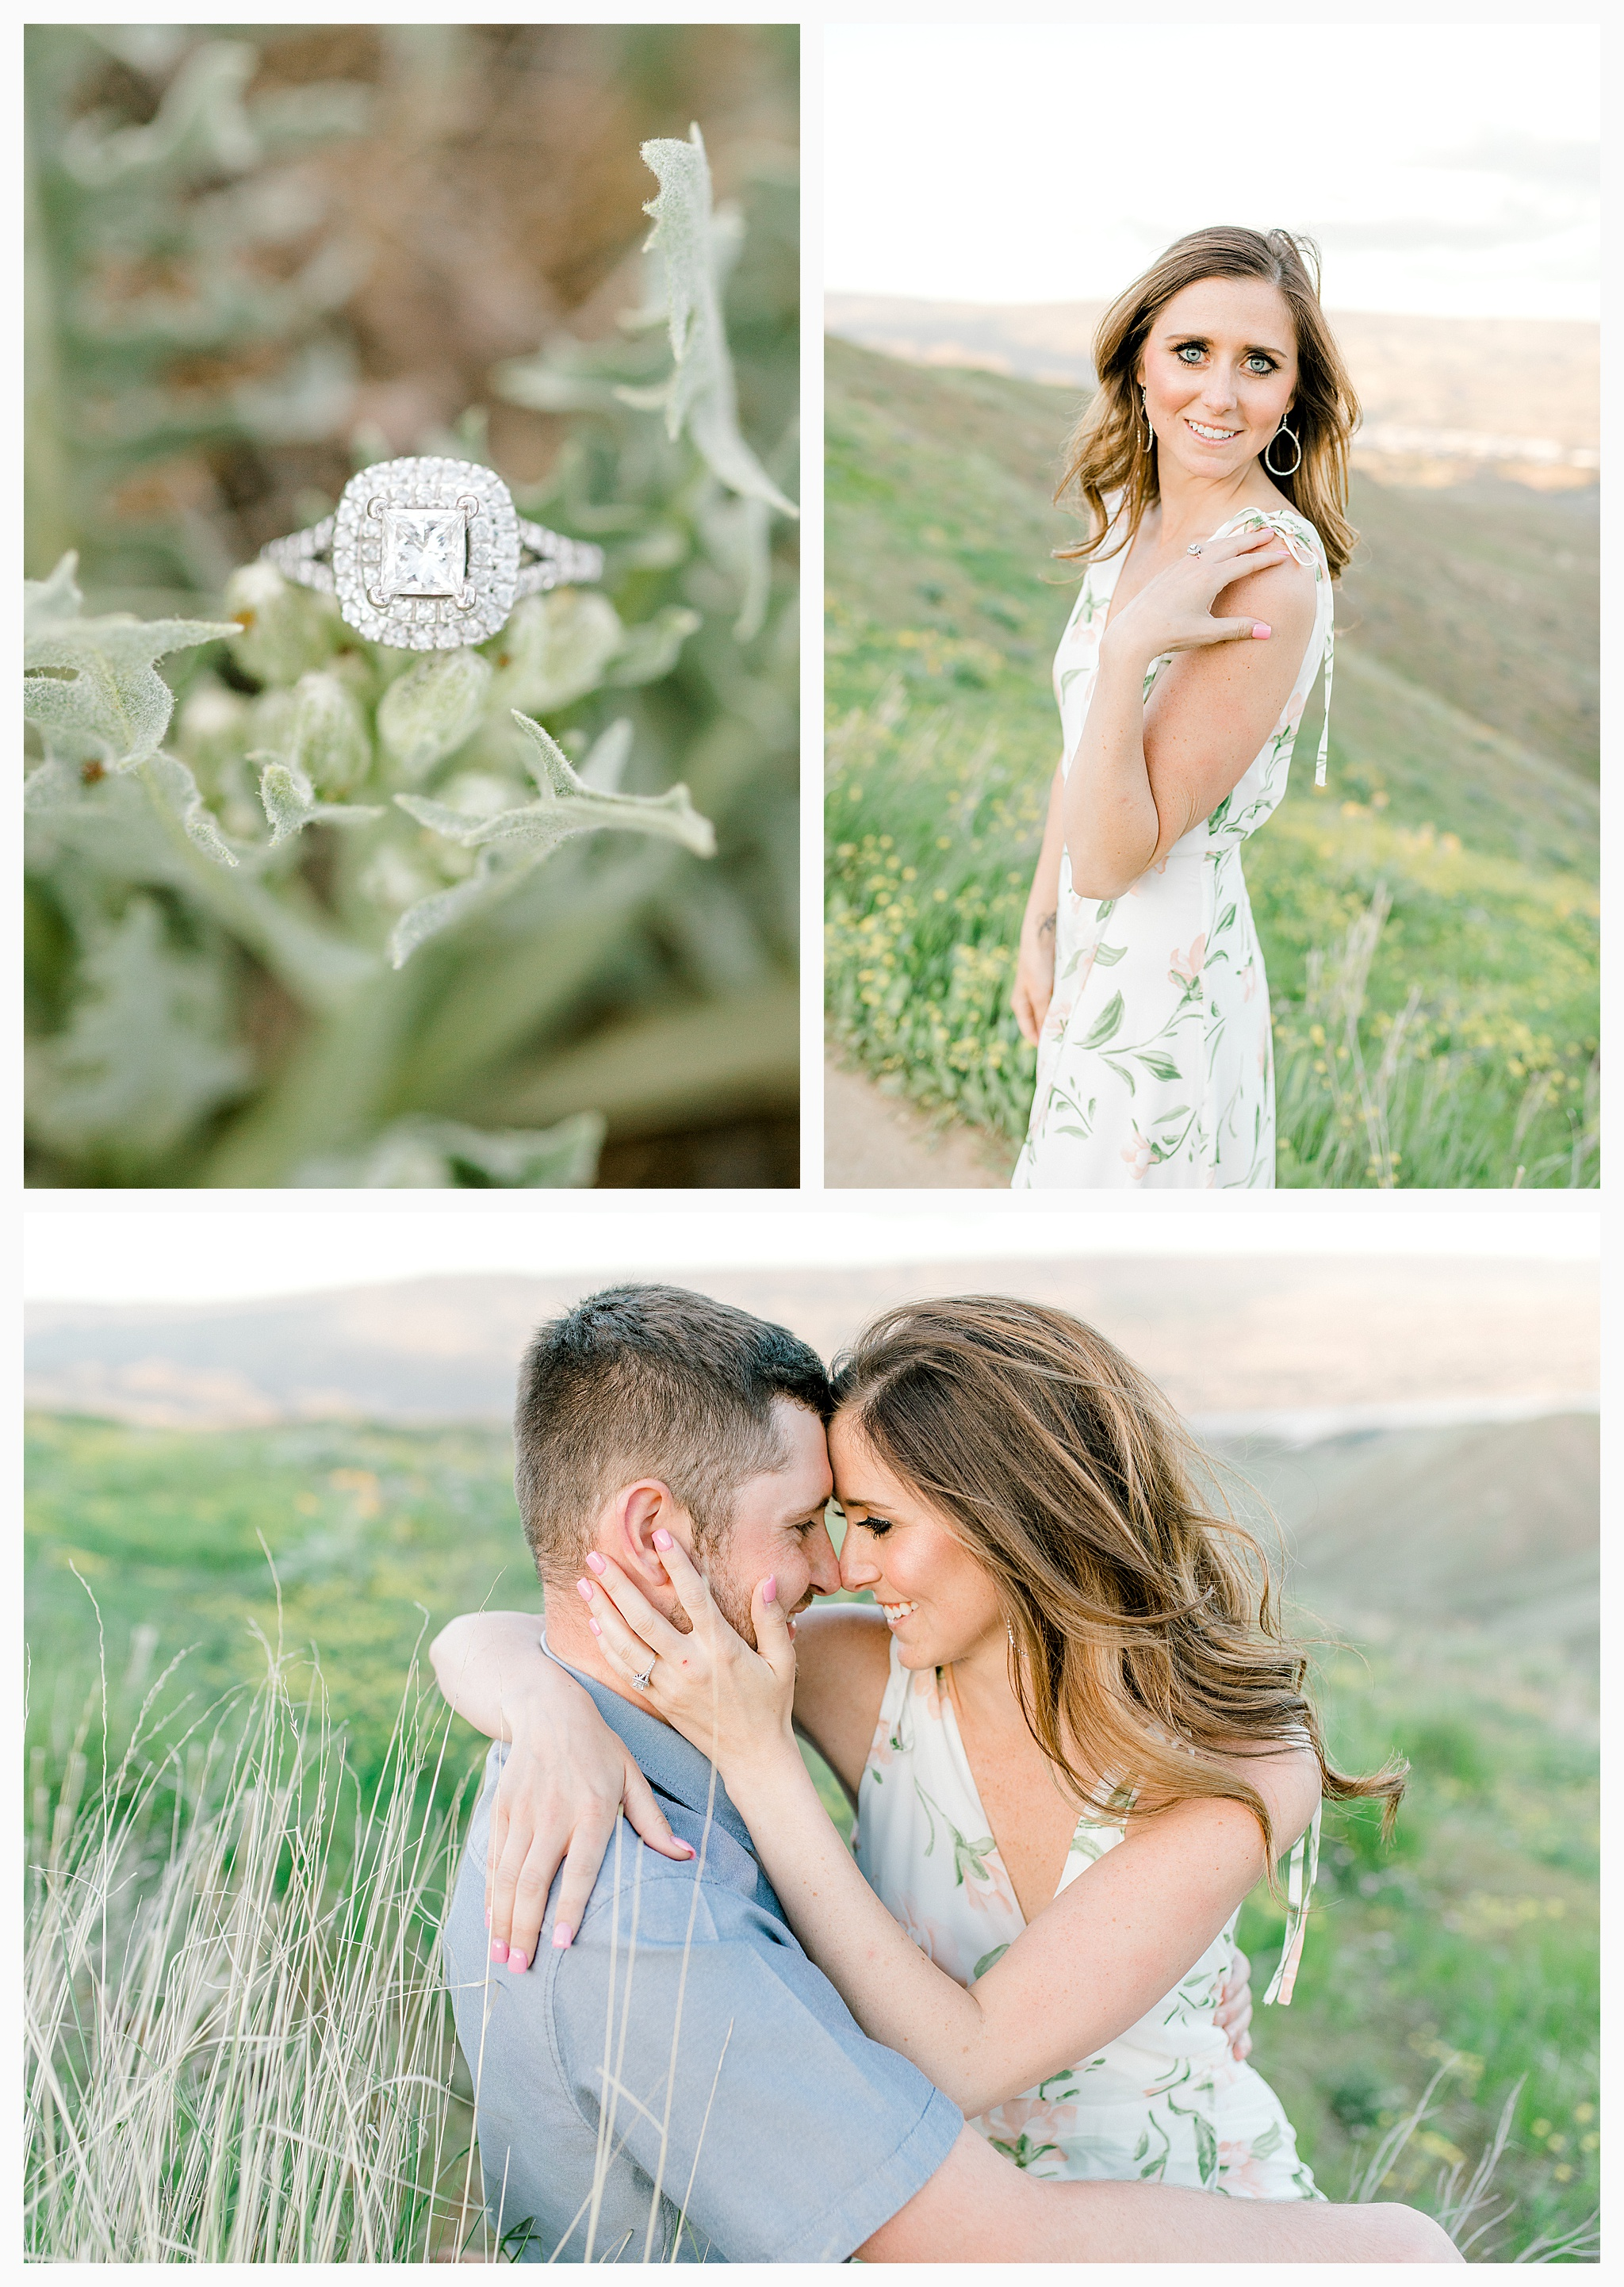 Engagement session amongst the wildflowers in Wenatchee, Washington | Engagement Session Outfit Inspiration for Wedding Photography with Emma Rose Company | Light and Airy PNW Photographer, Seattle Bride_0015.jpg